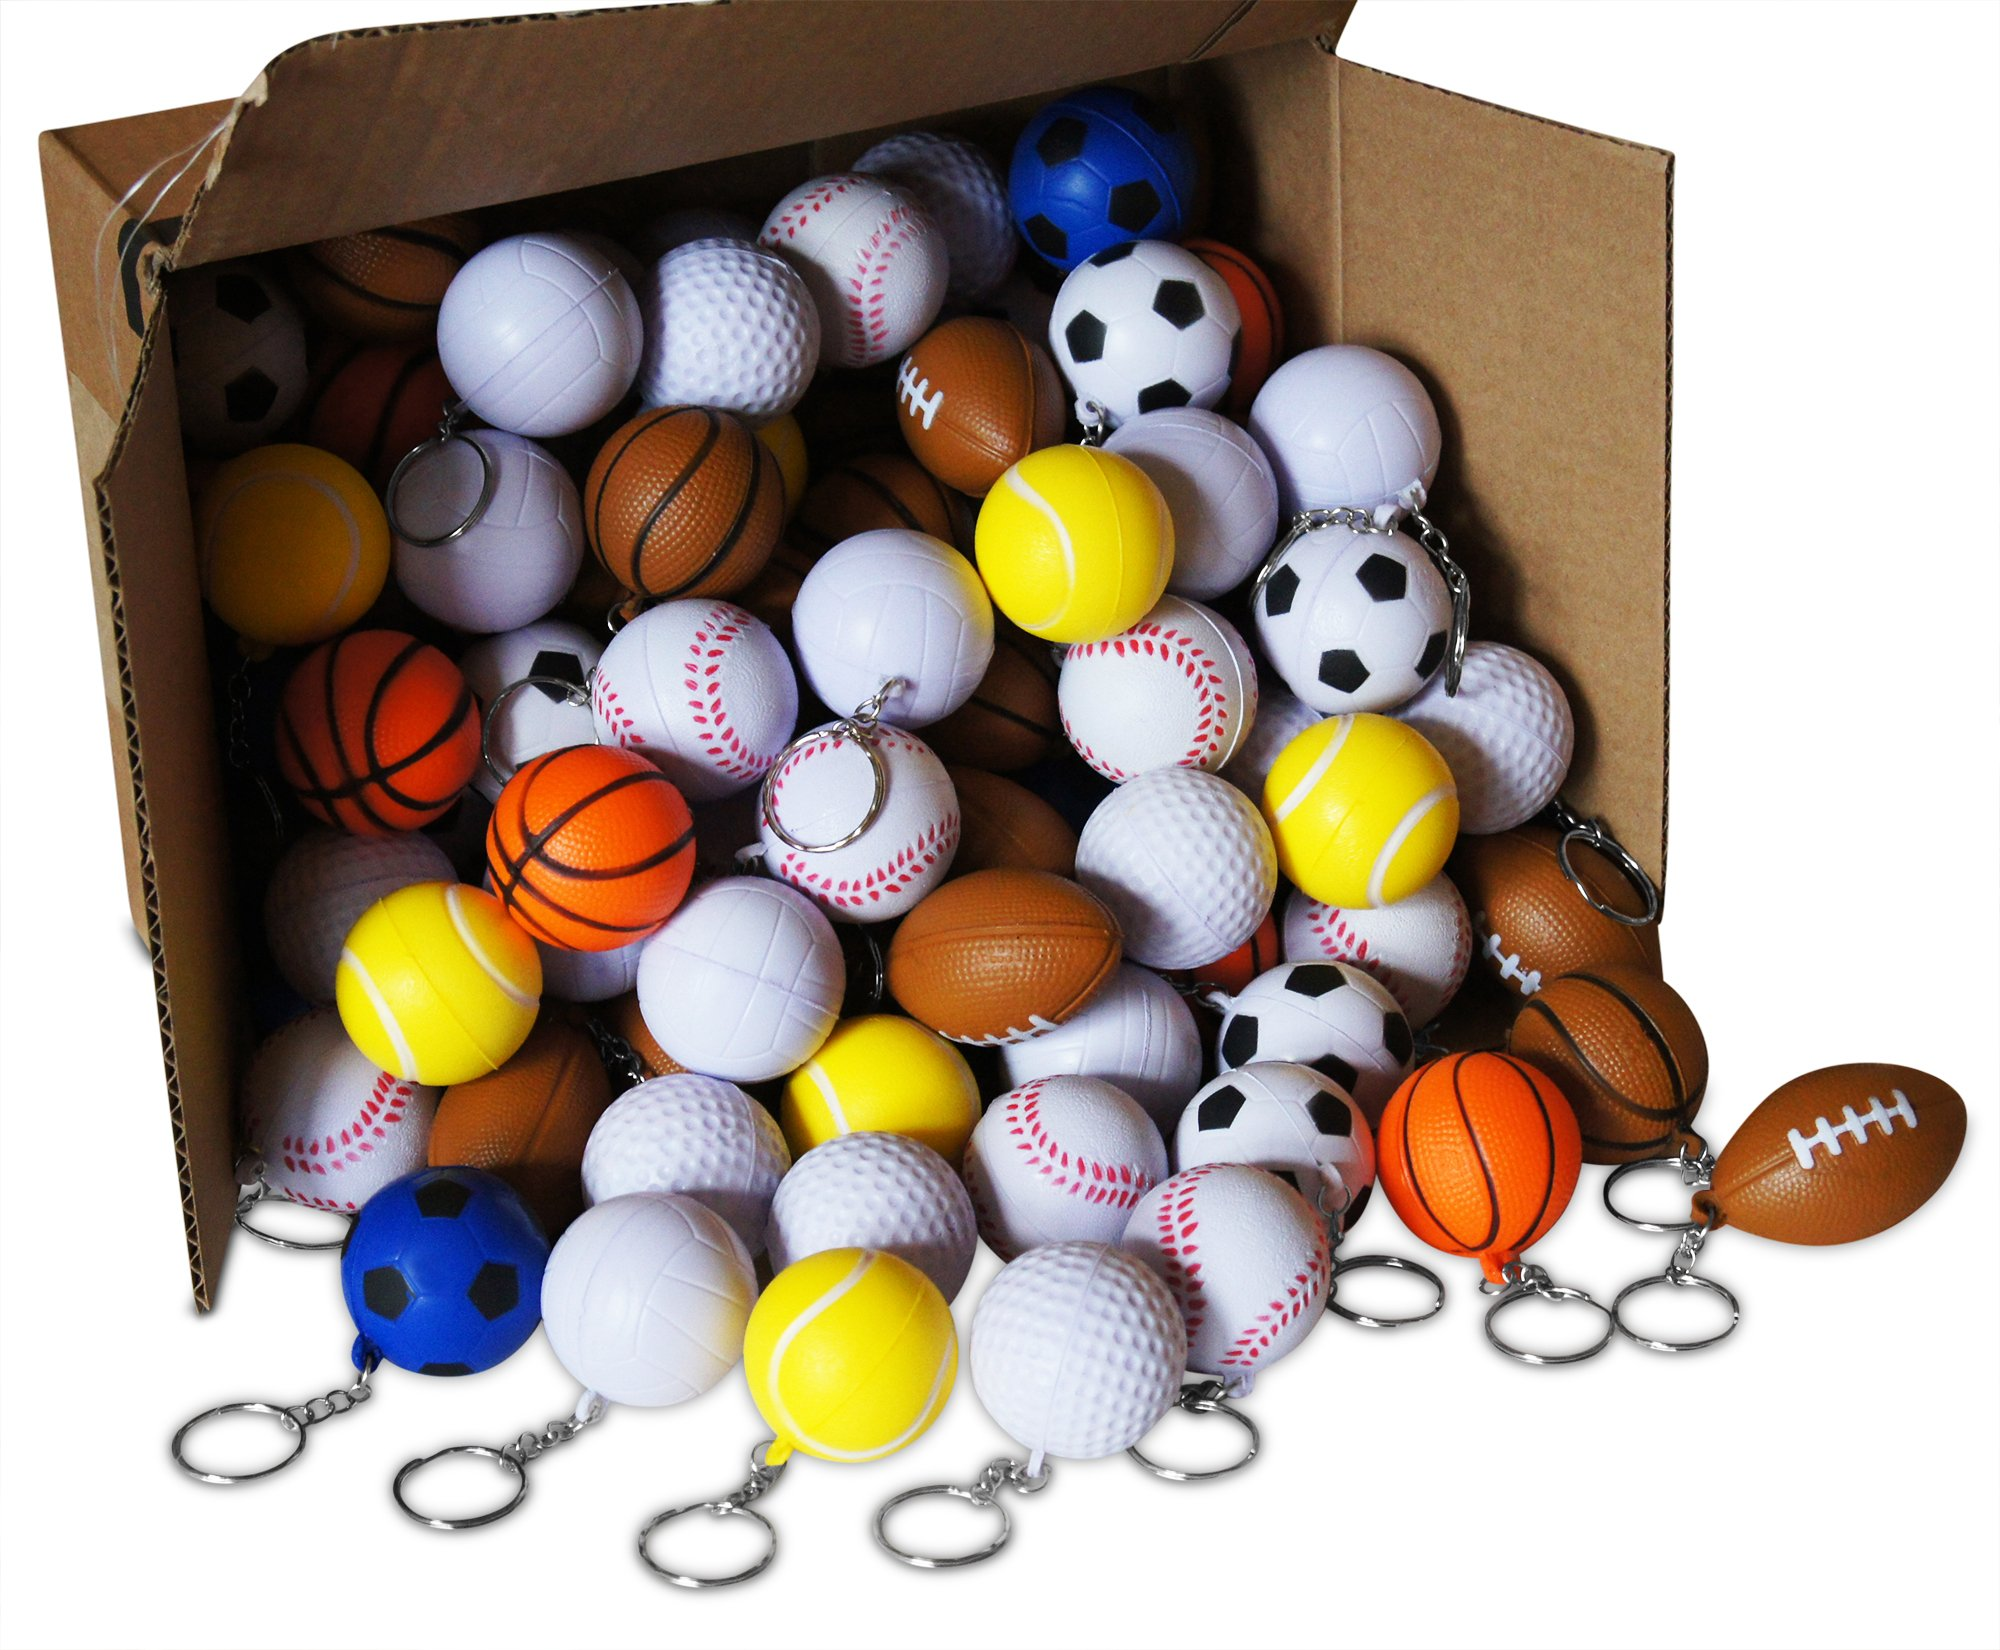 Novel Merk 216-Piece Sports Ball Keychains Pack for Kids Party Favors, School Carnival Prizes, & Business Promotional Item Includes 9 Different Designs by Novel Merk